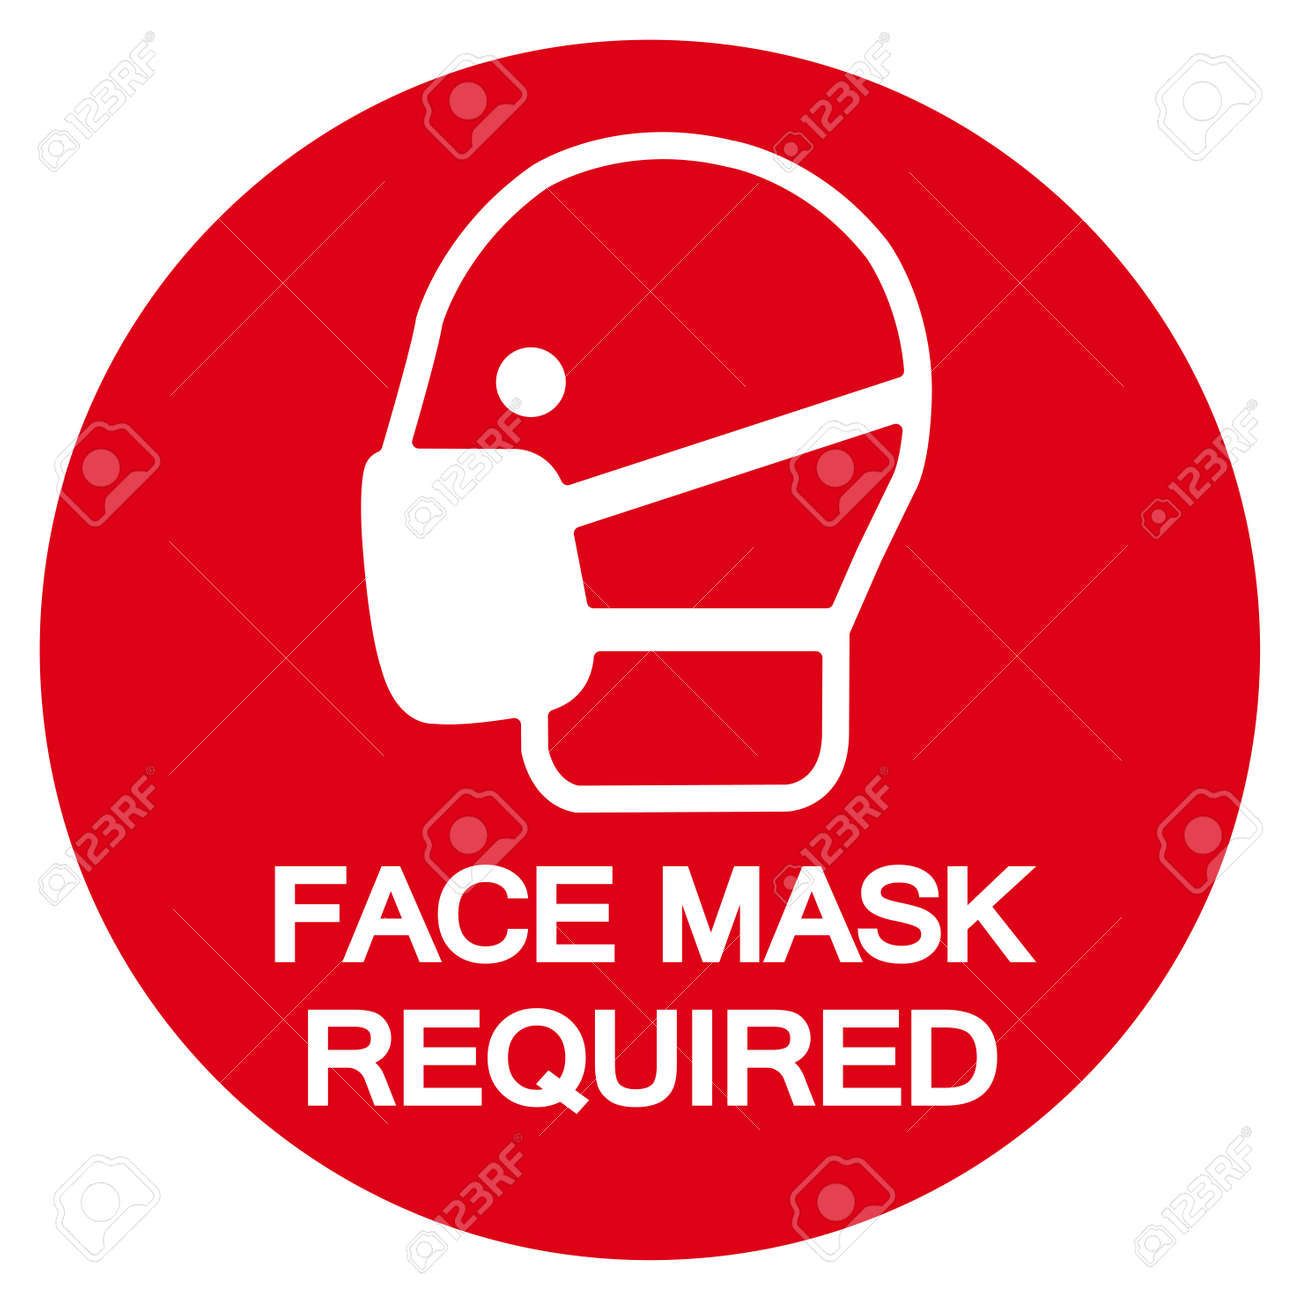 Face Mask Required Symbol Sign,Vector Illustration, Isolated On White Background Label. EPS10 - 155624552